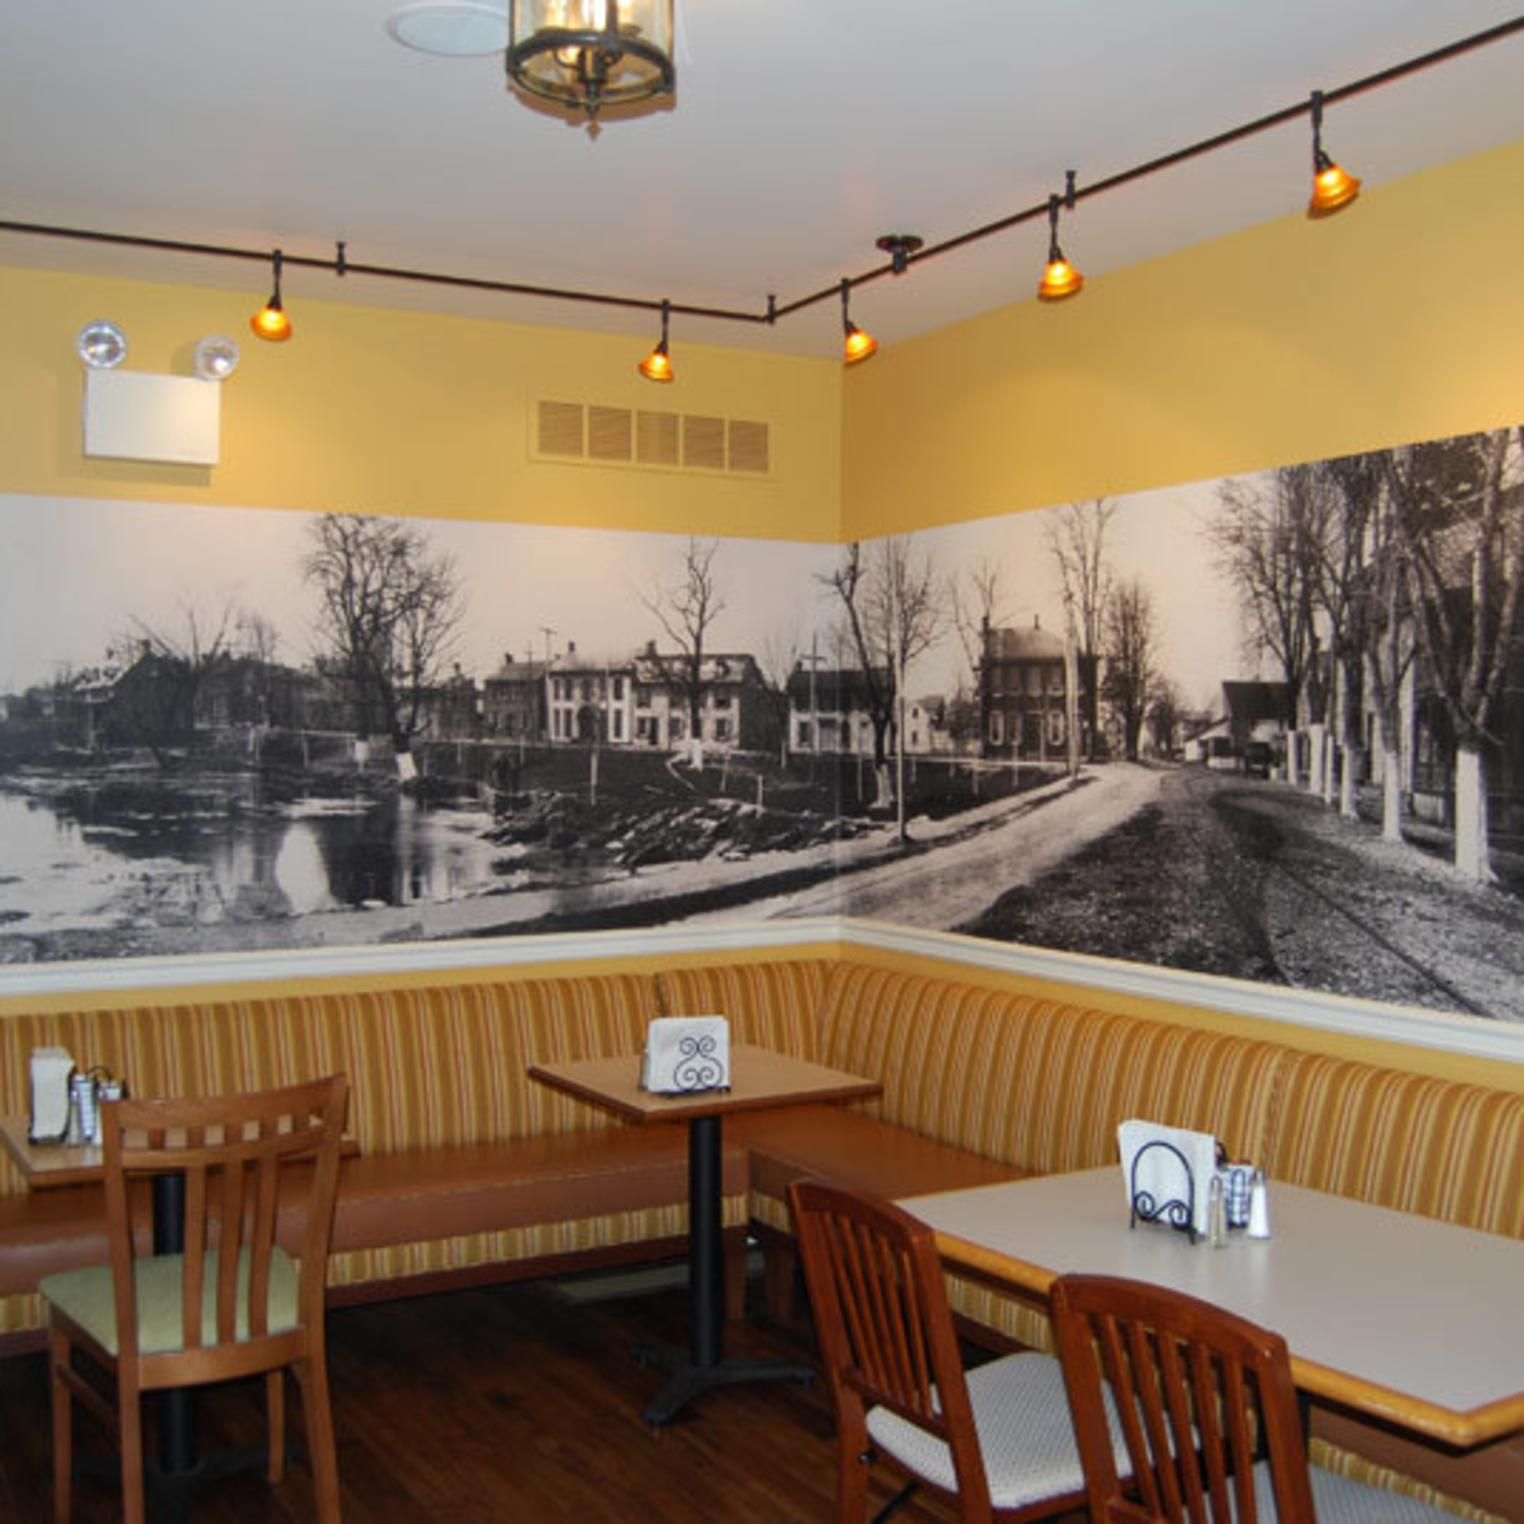 Boiling Springs Wall Mural at Caffe 101